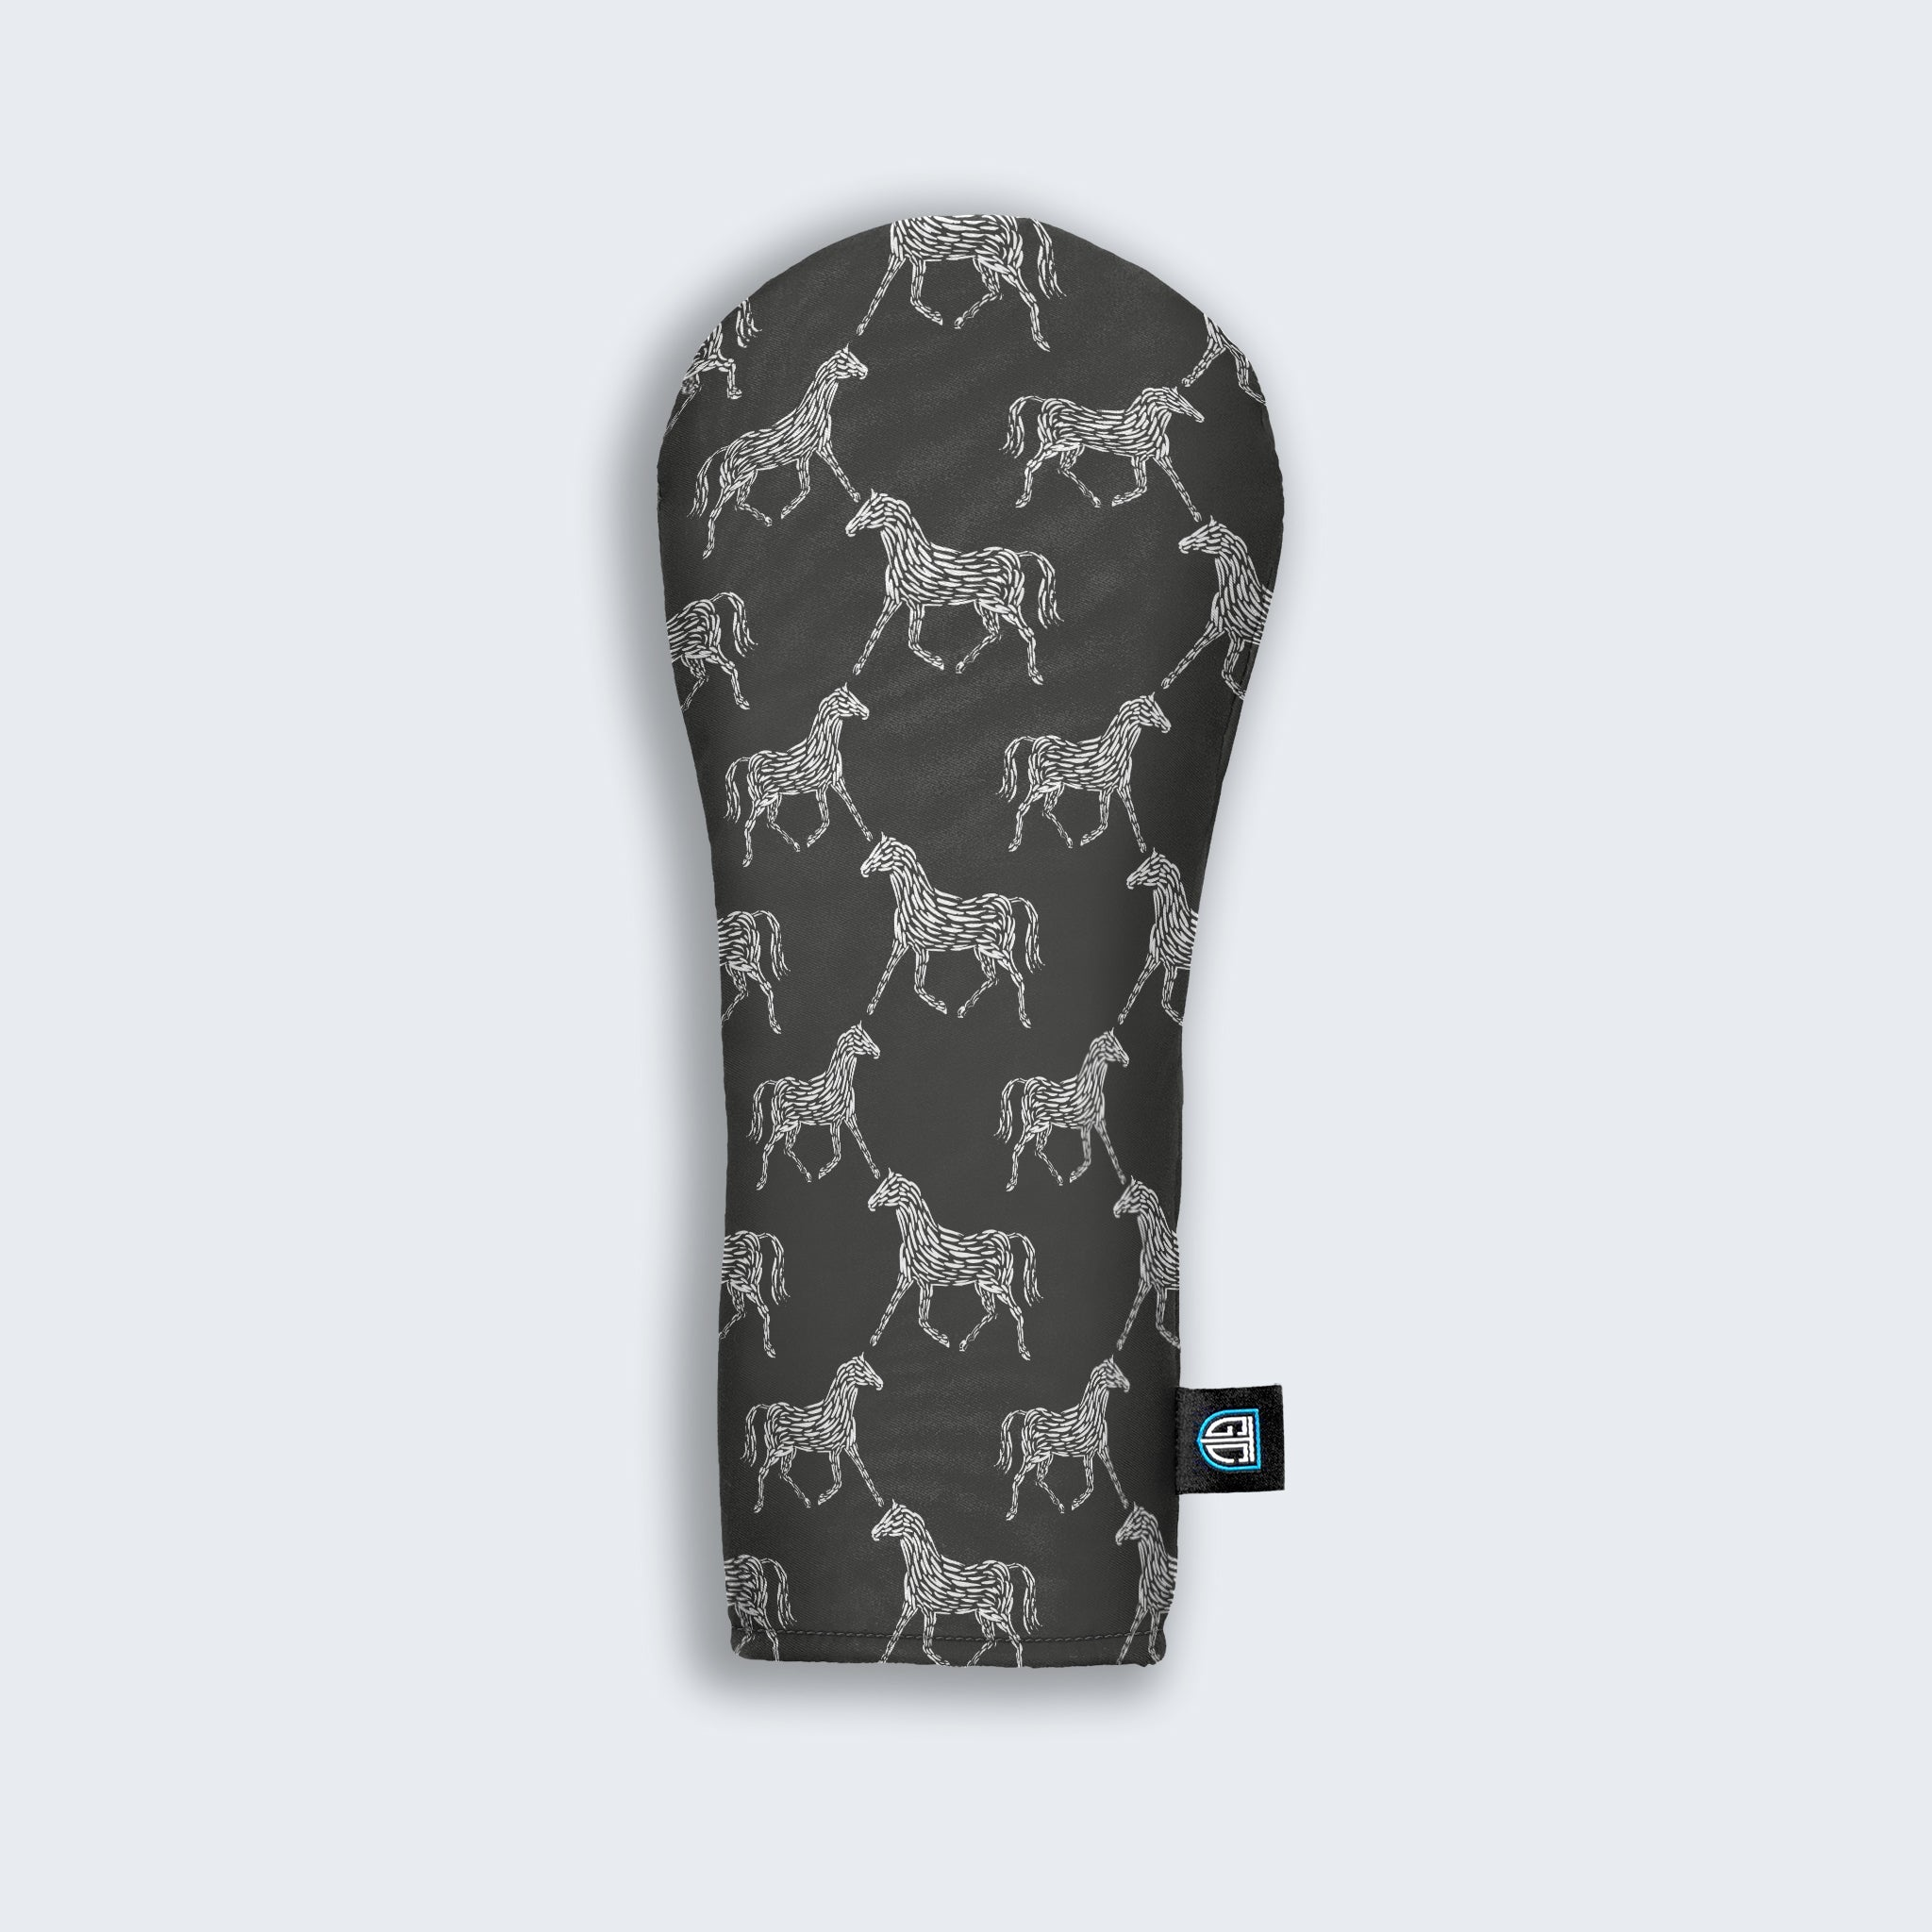 Horses Head Covers - personalised golf clothing, golf teamwear, Head Covers, Towels & accessories online